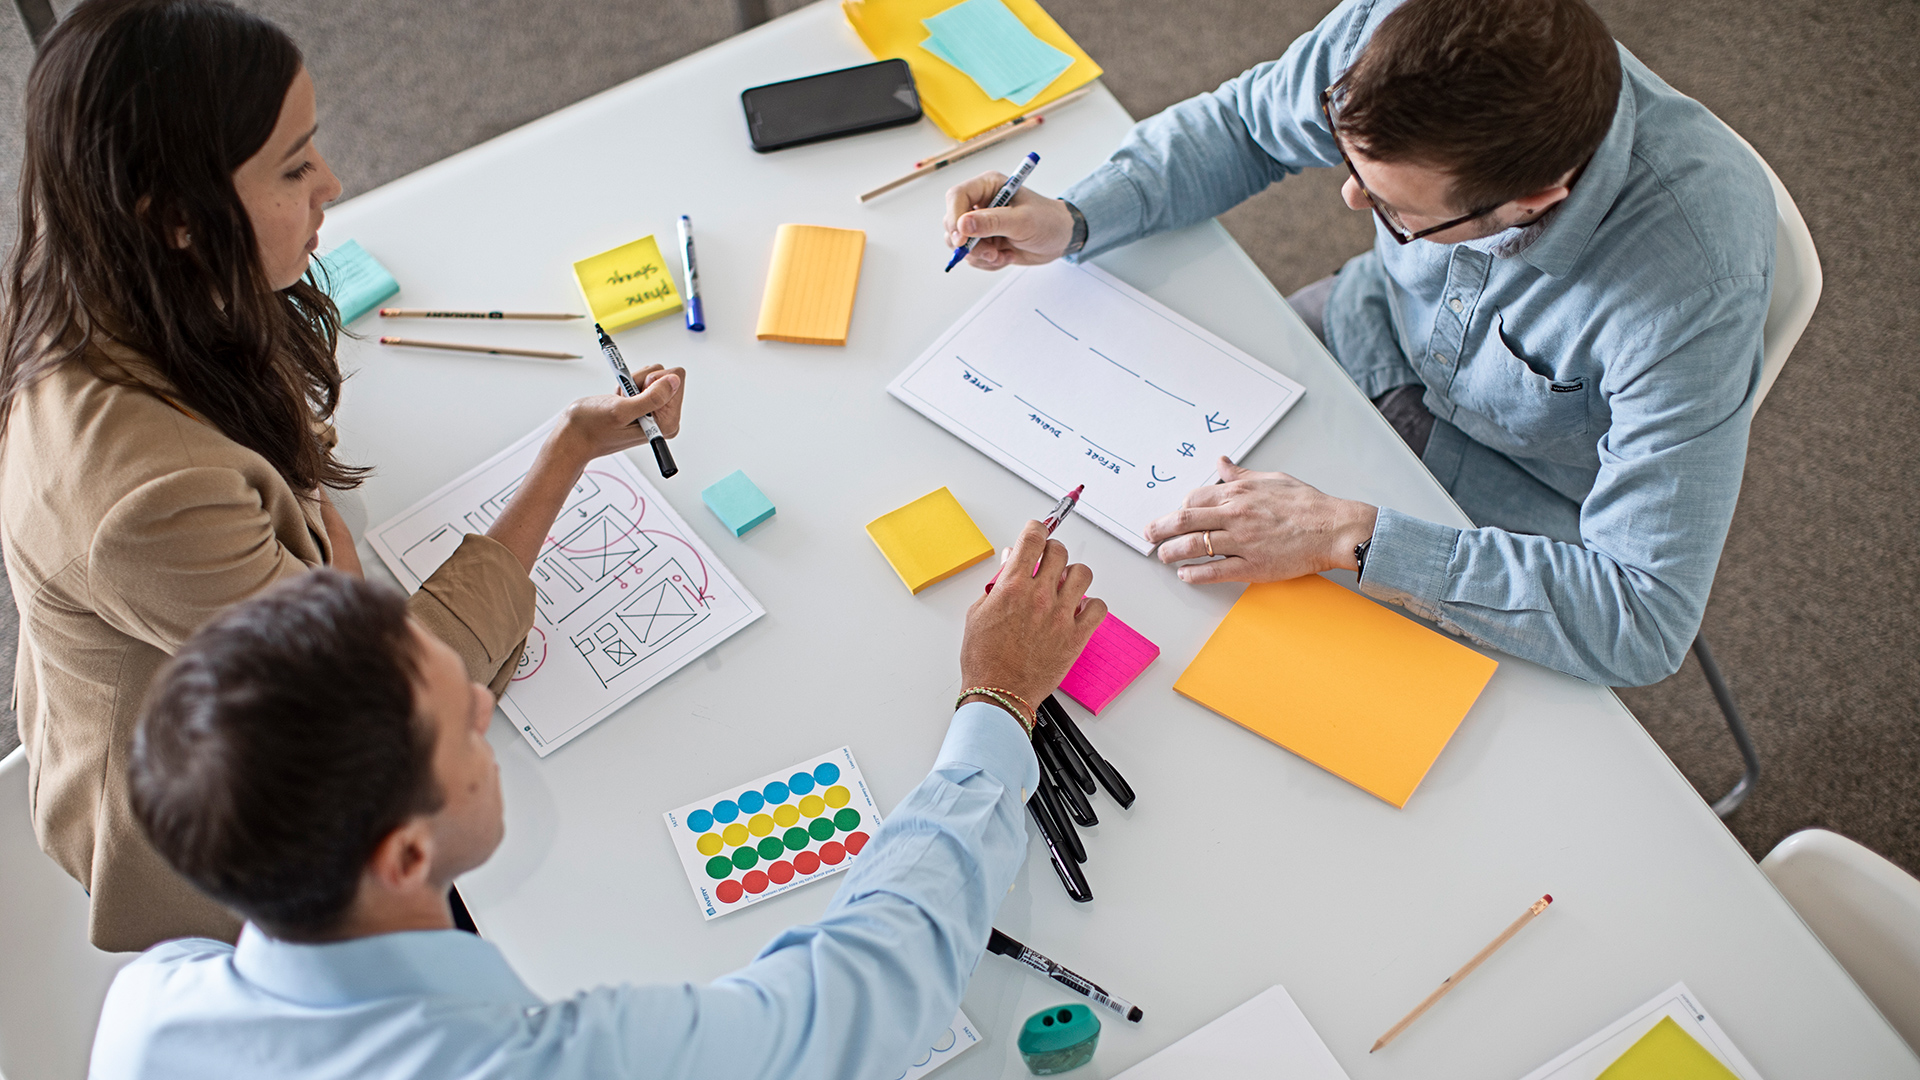 three people working at a table with sticky notes, pens and paper